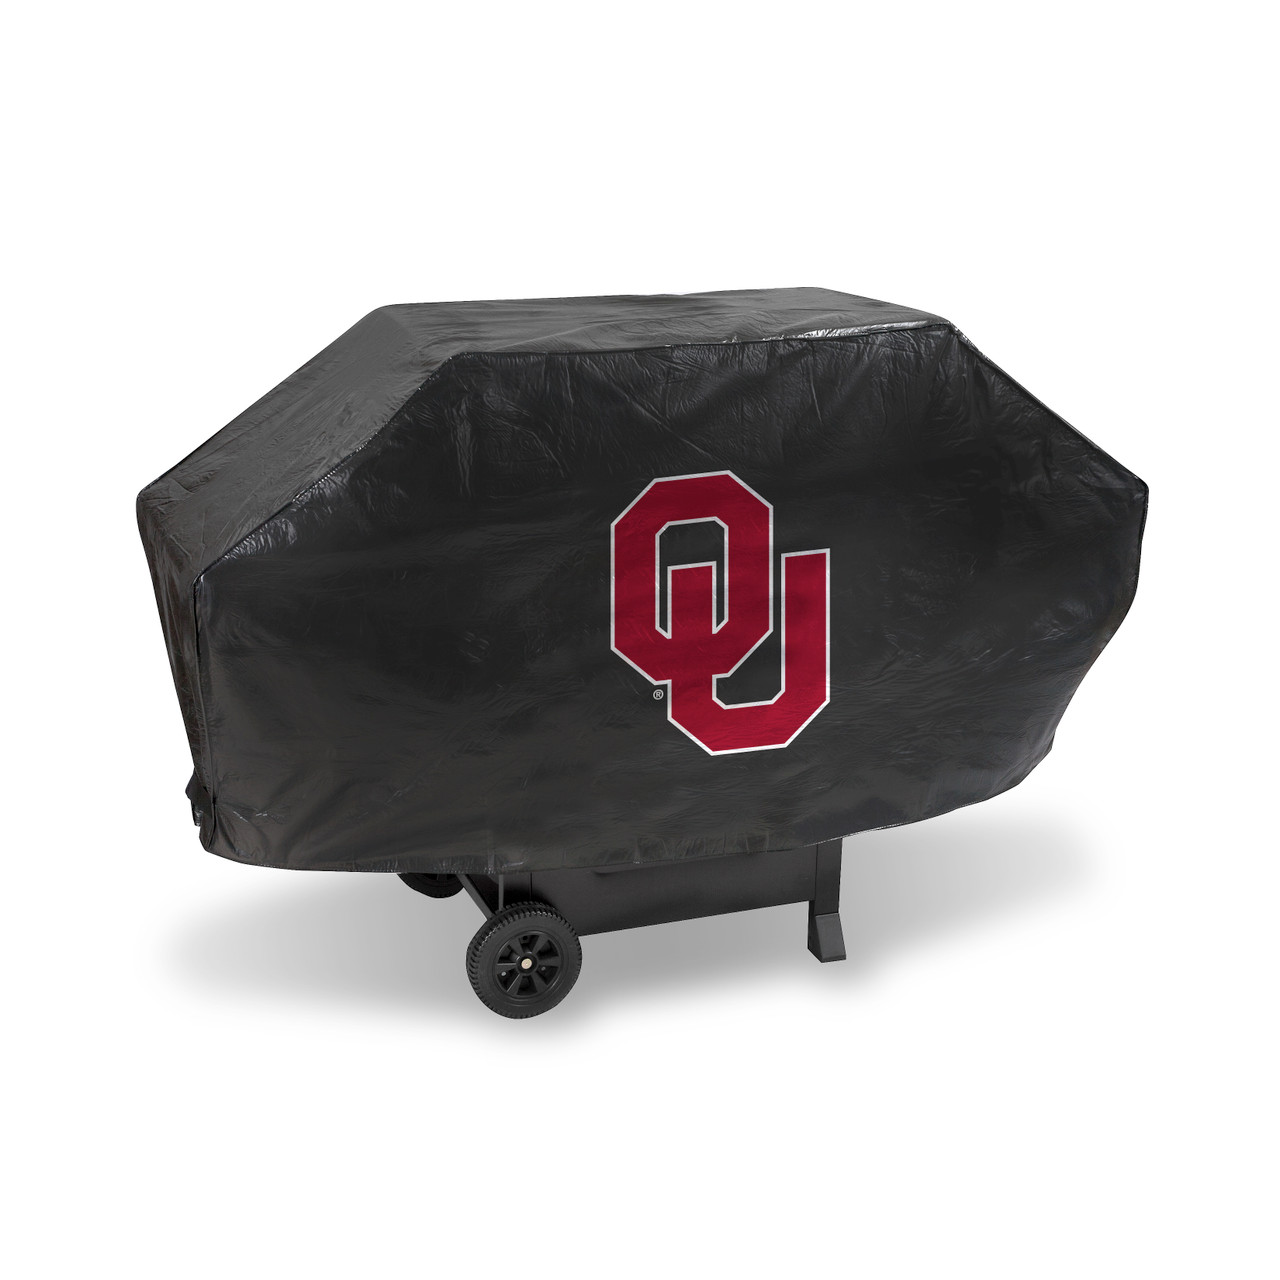 Oklahoma Sooners Grill Cover Deluxe Alternate